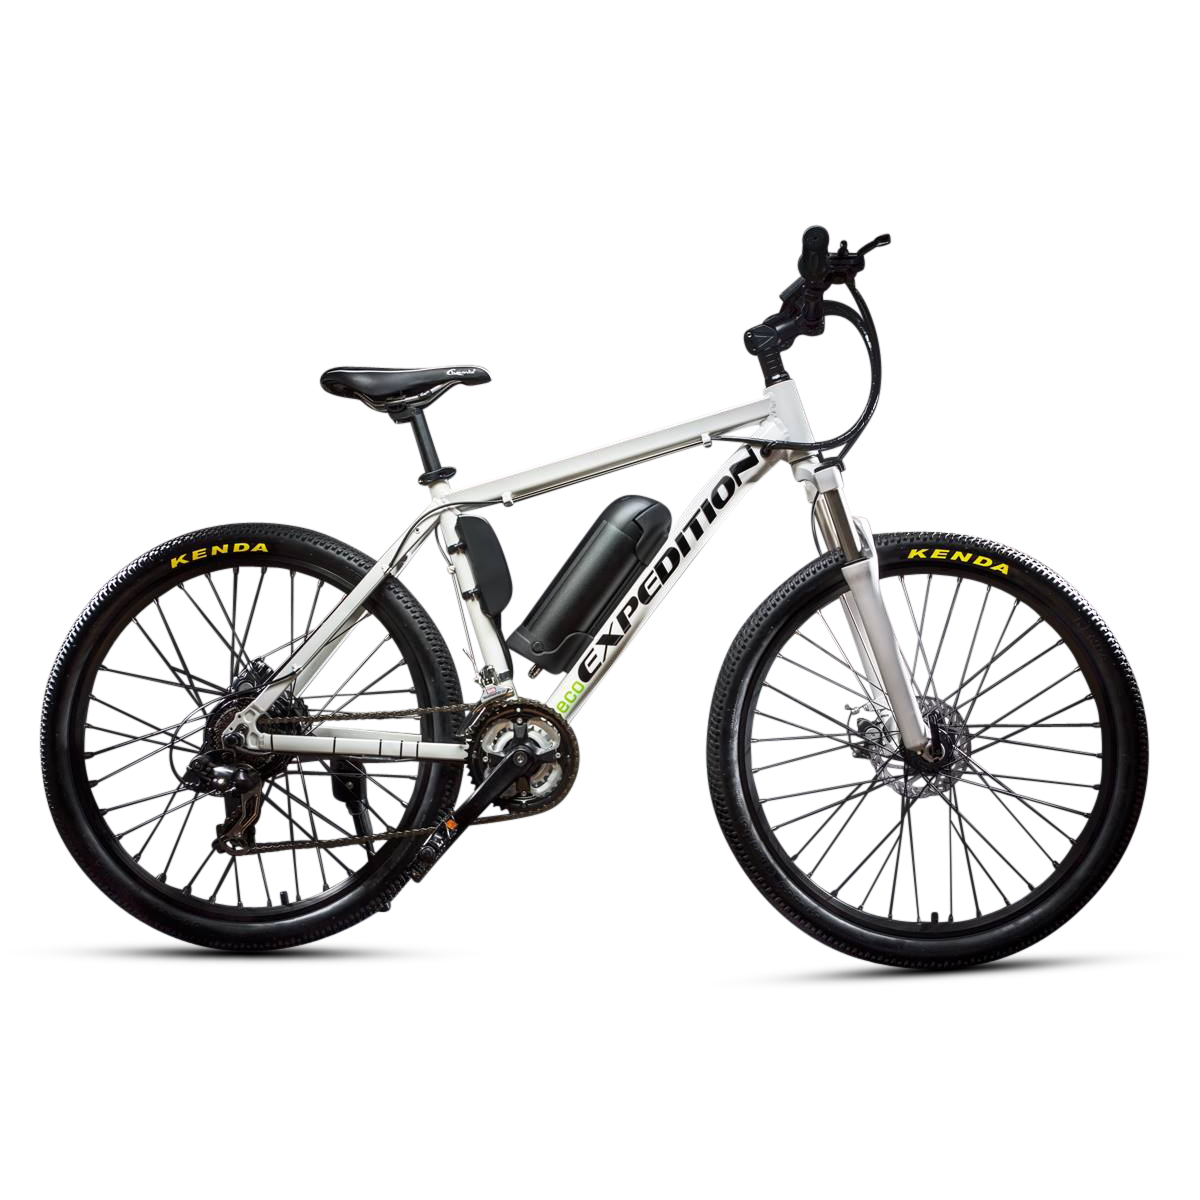 Expedition Bikes Image